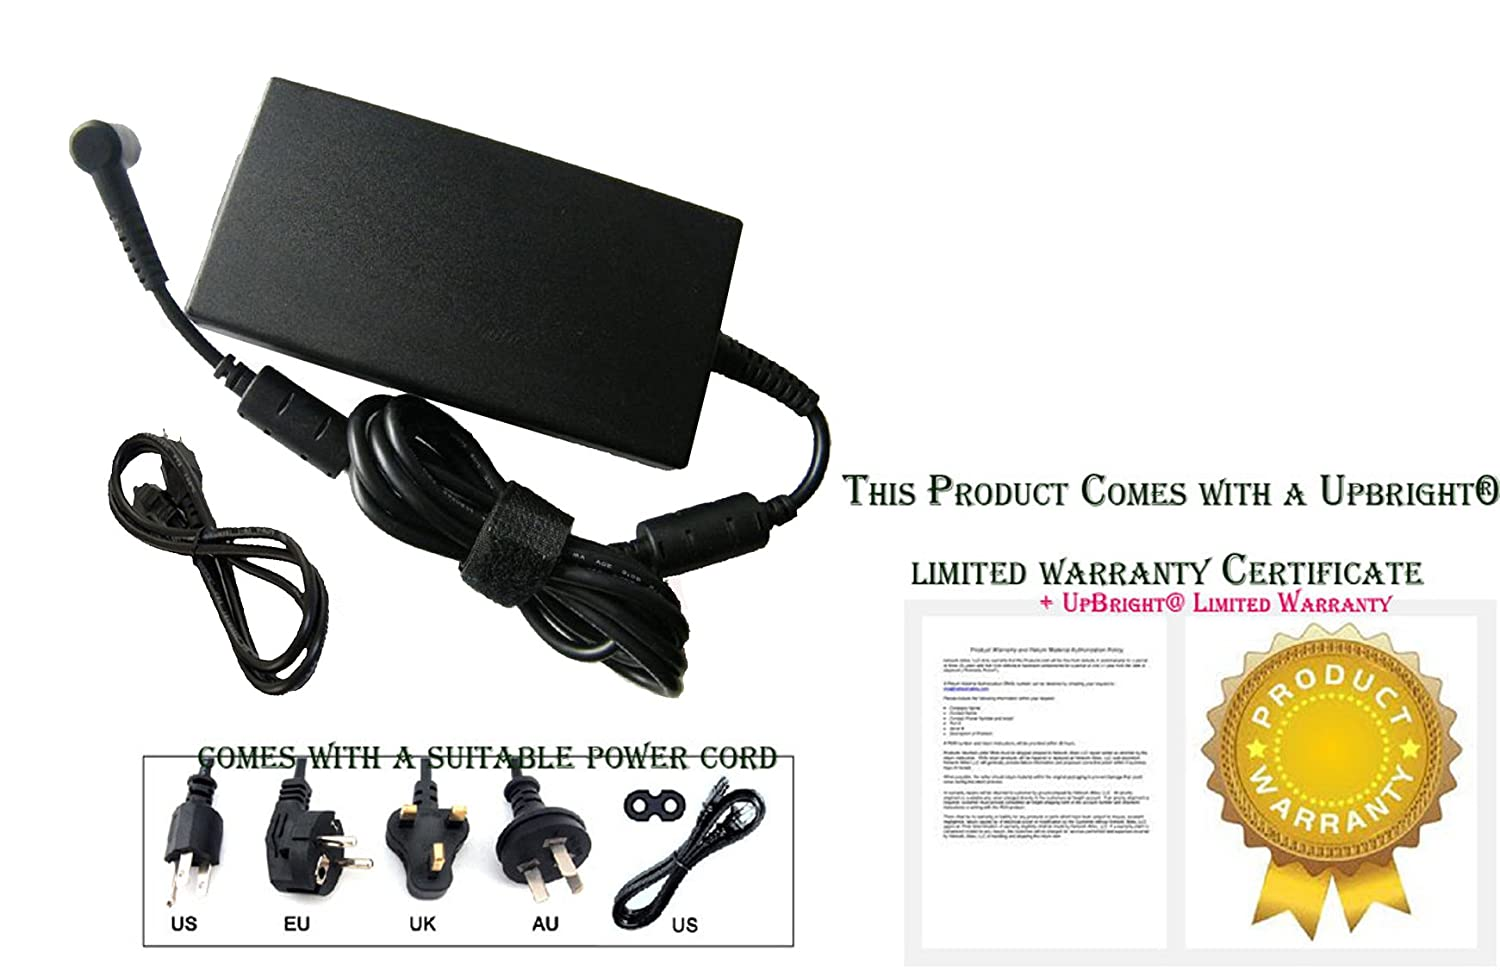 Hewlett Packard 732811-001 power supply - 120 Watt by HP